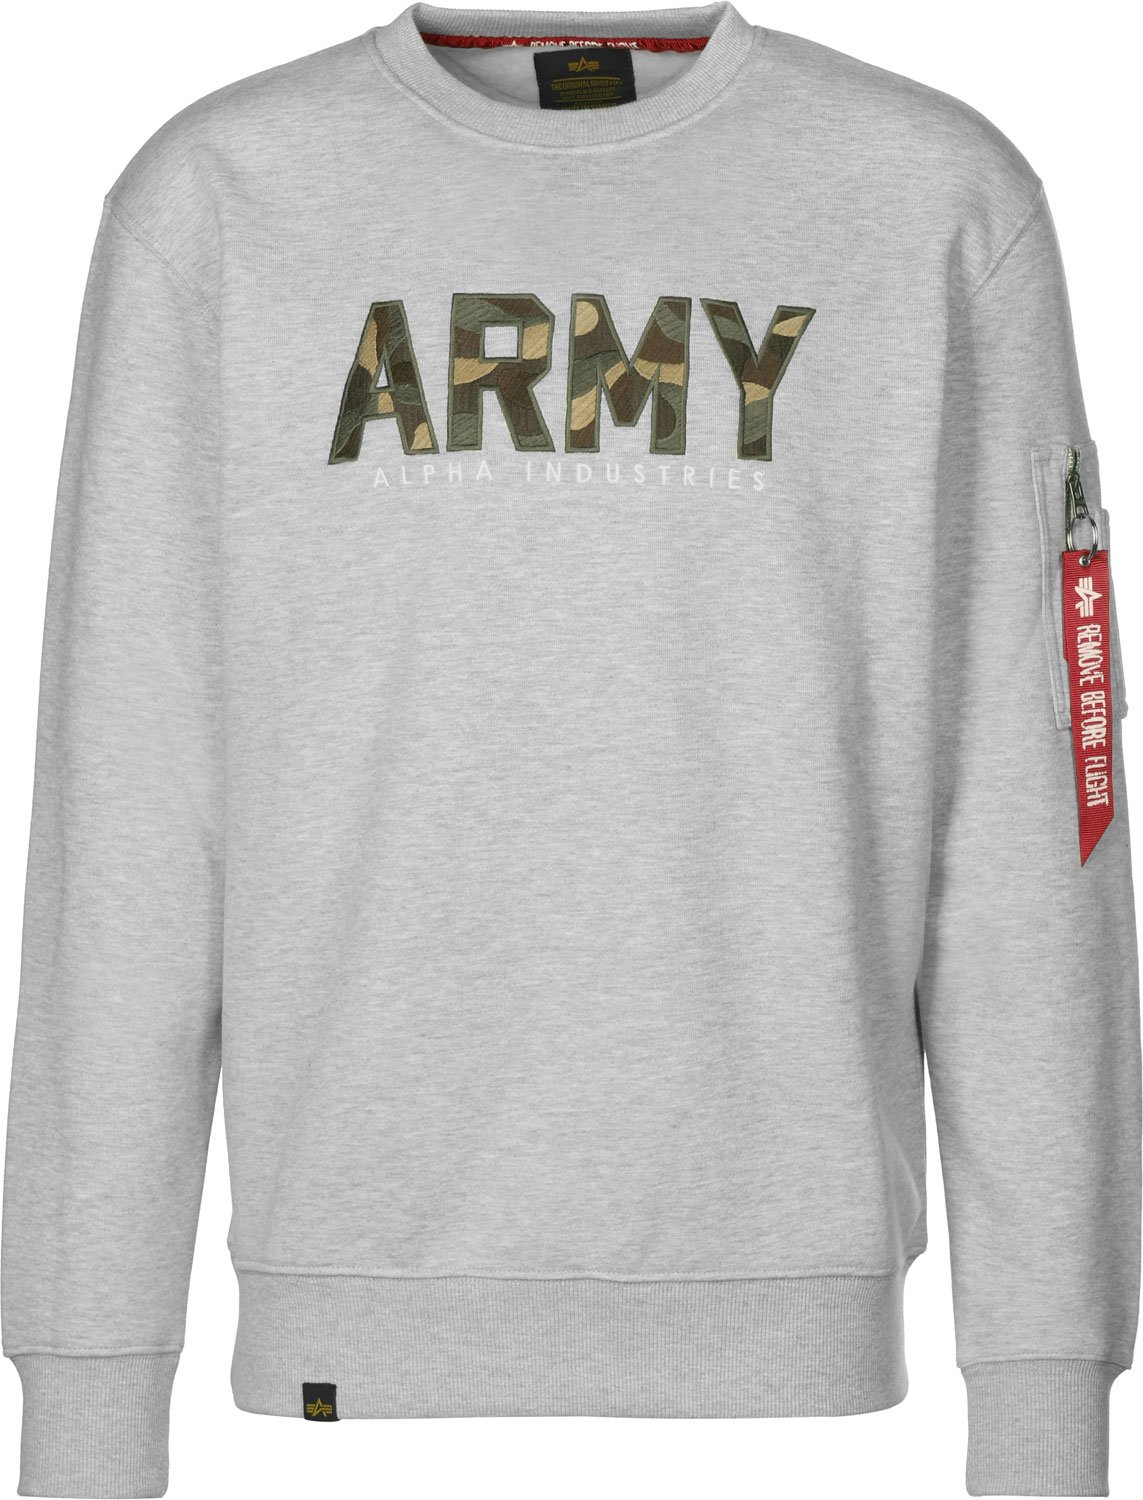 Alpha Industries Army Camo Sweatshirt Grau Grün L